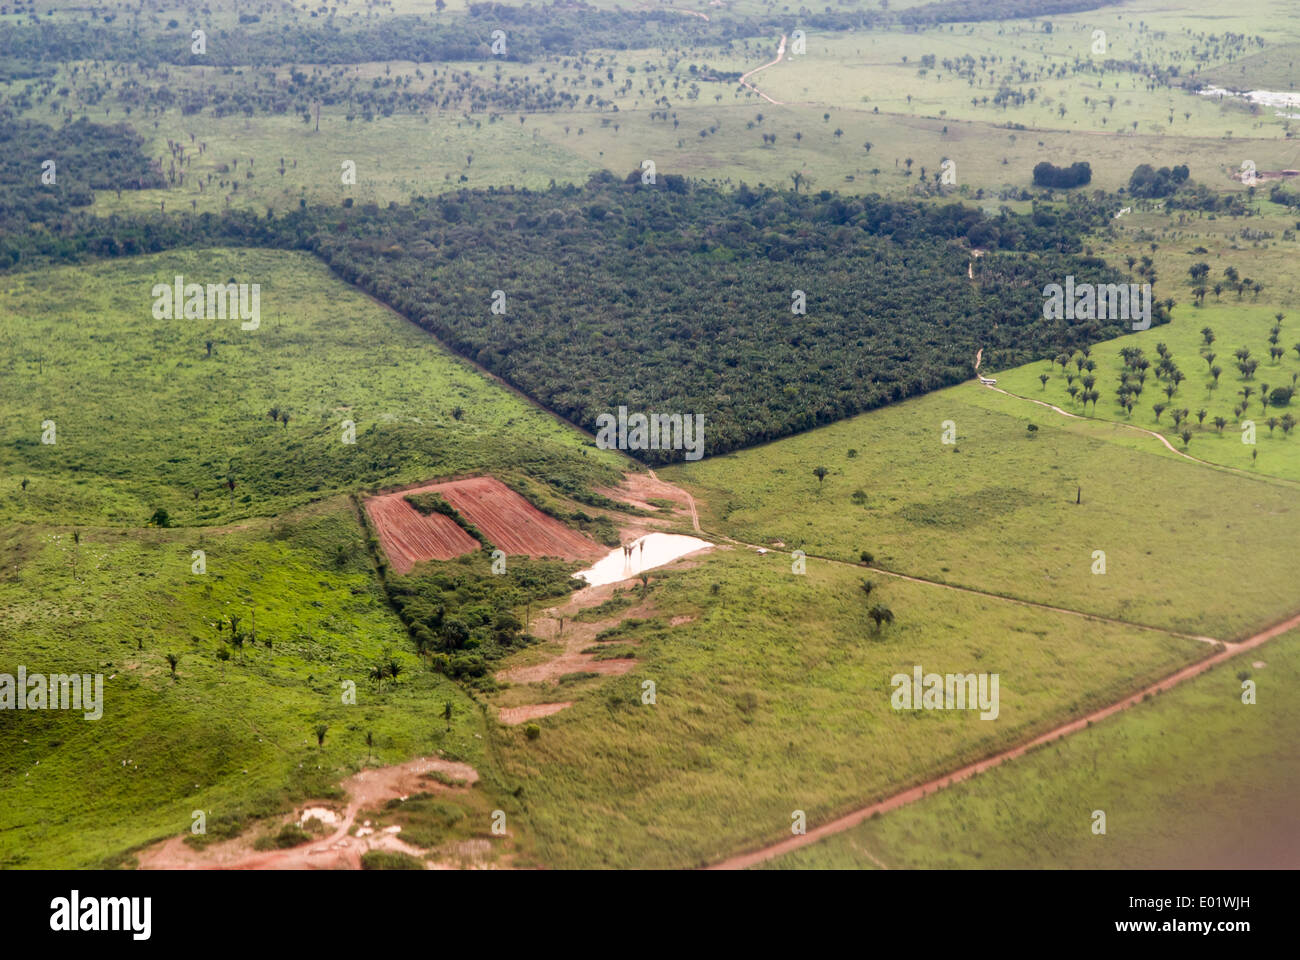 Belem to Maraba, Brazil. Aerial view of a patch of forest surrounded by farm land deforested for cattle pasture. - Stock Image